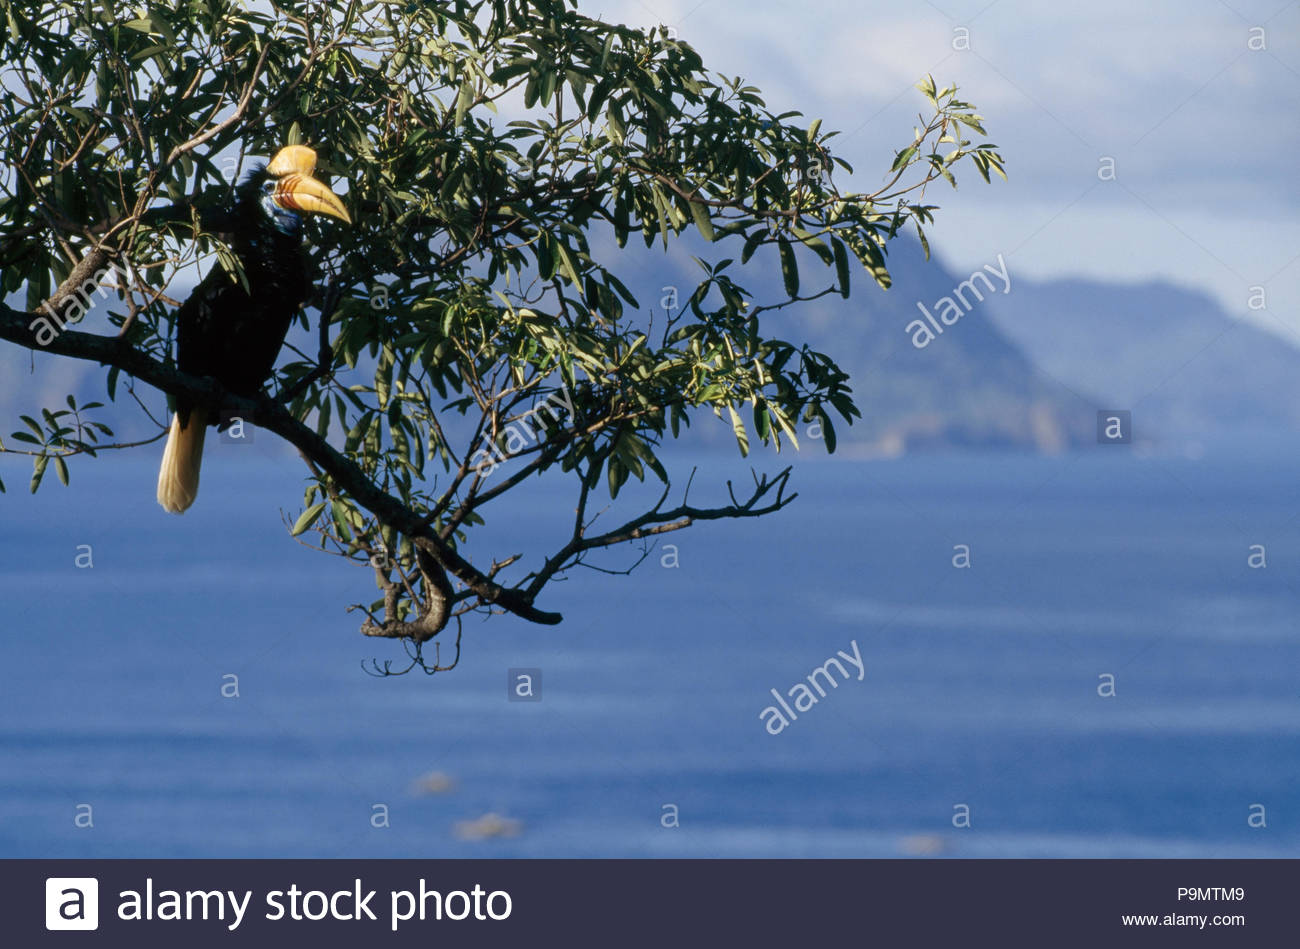 A female red knobbed hornbill perches on a tree branch. - Stock Image